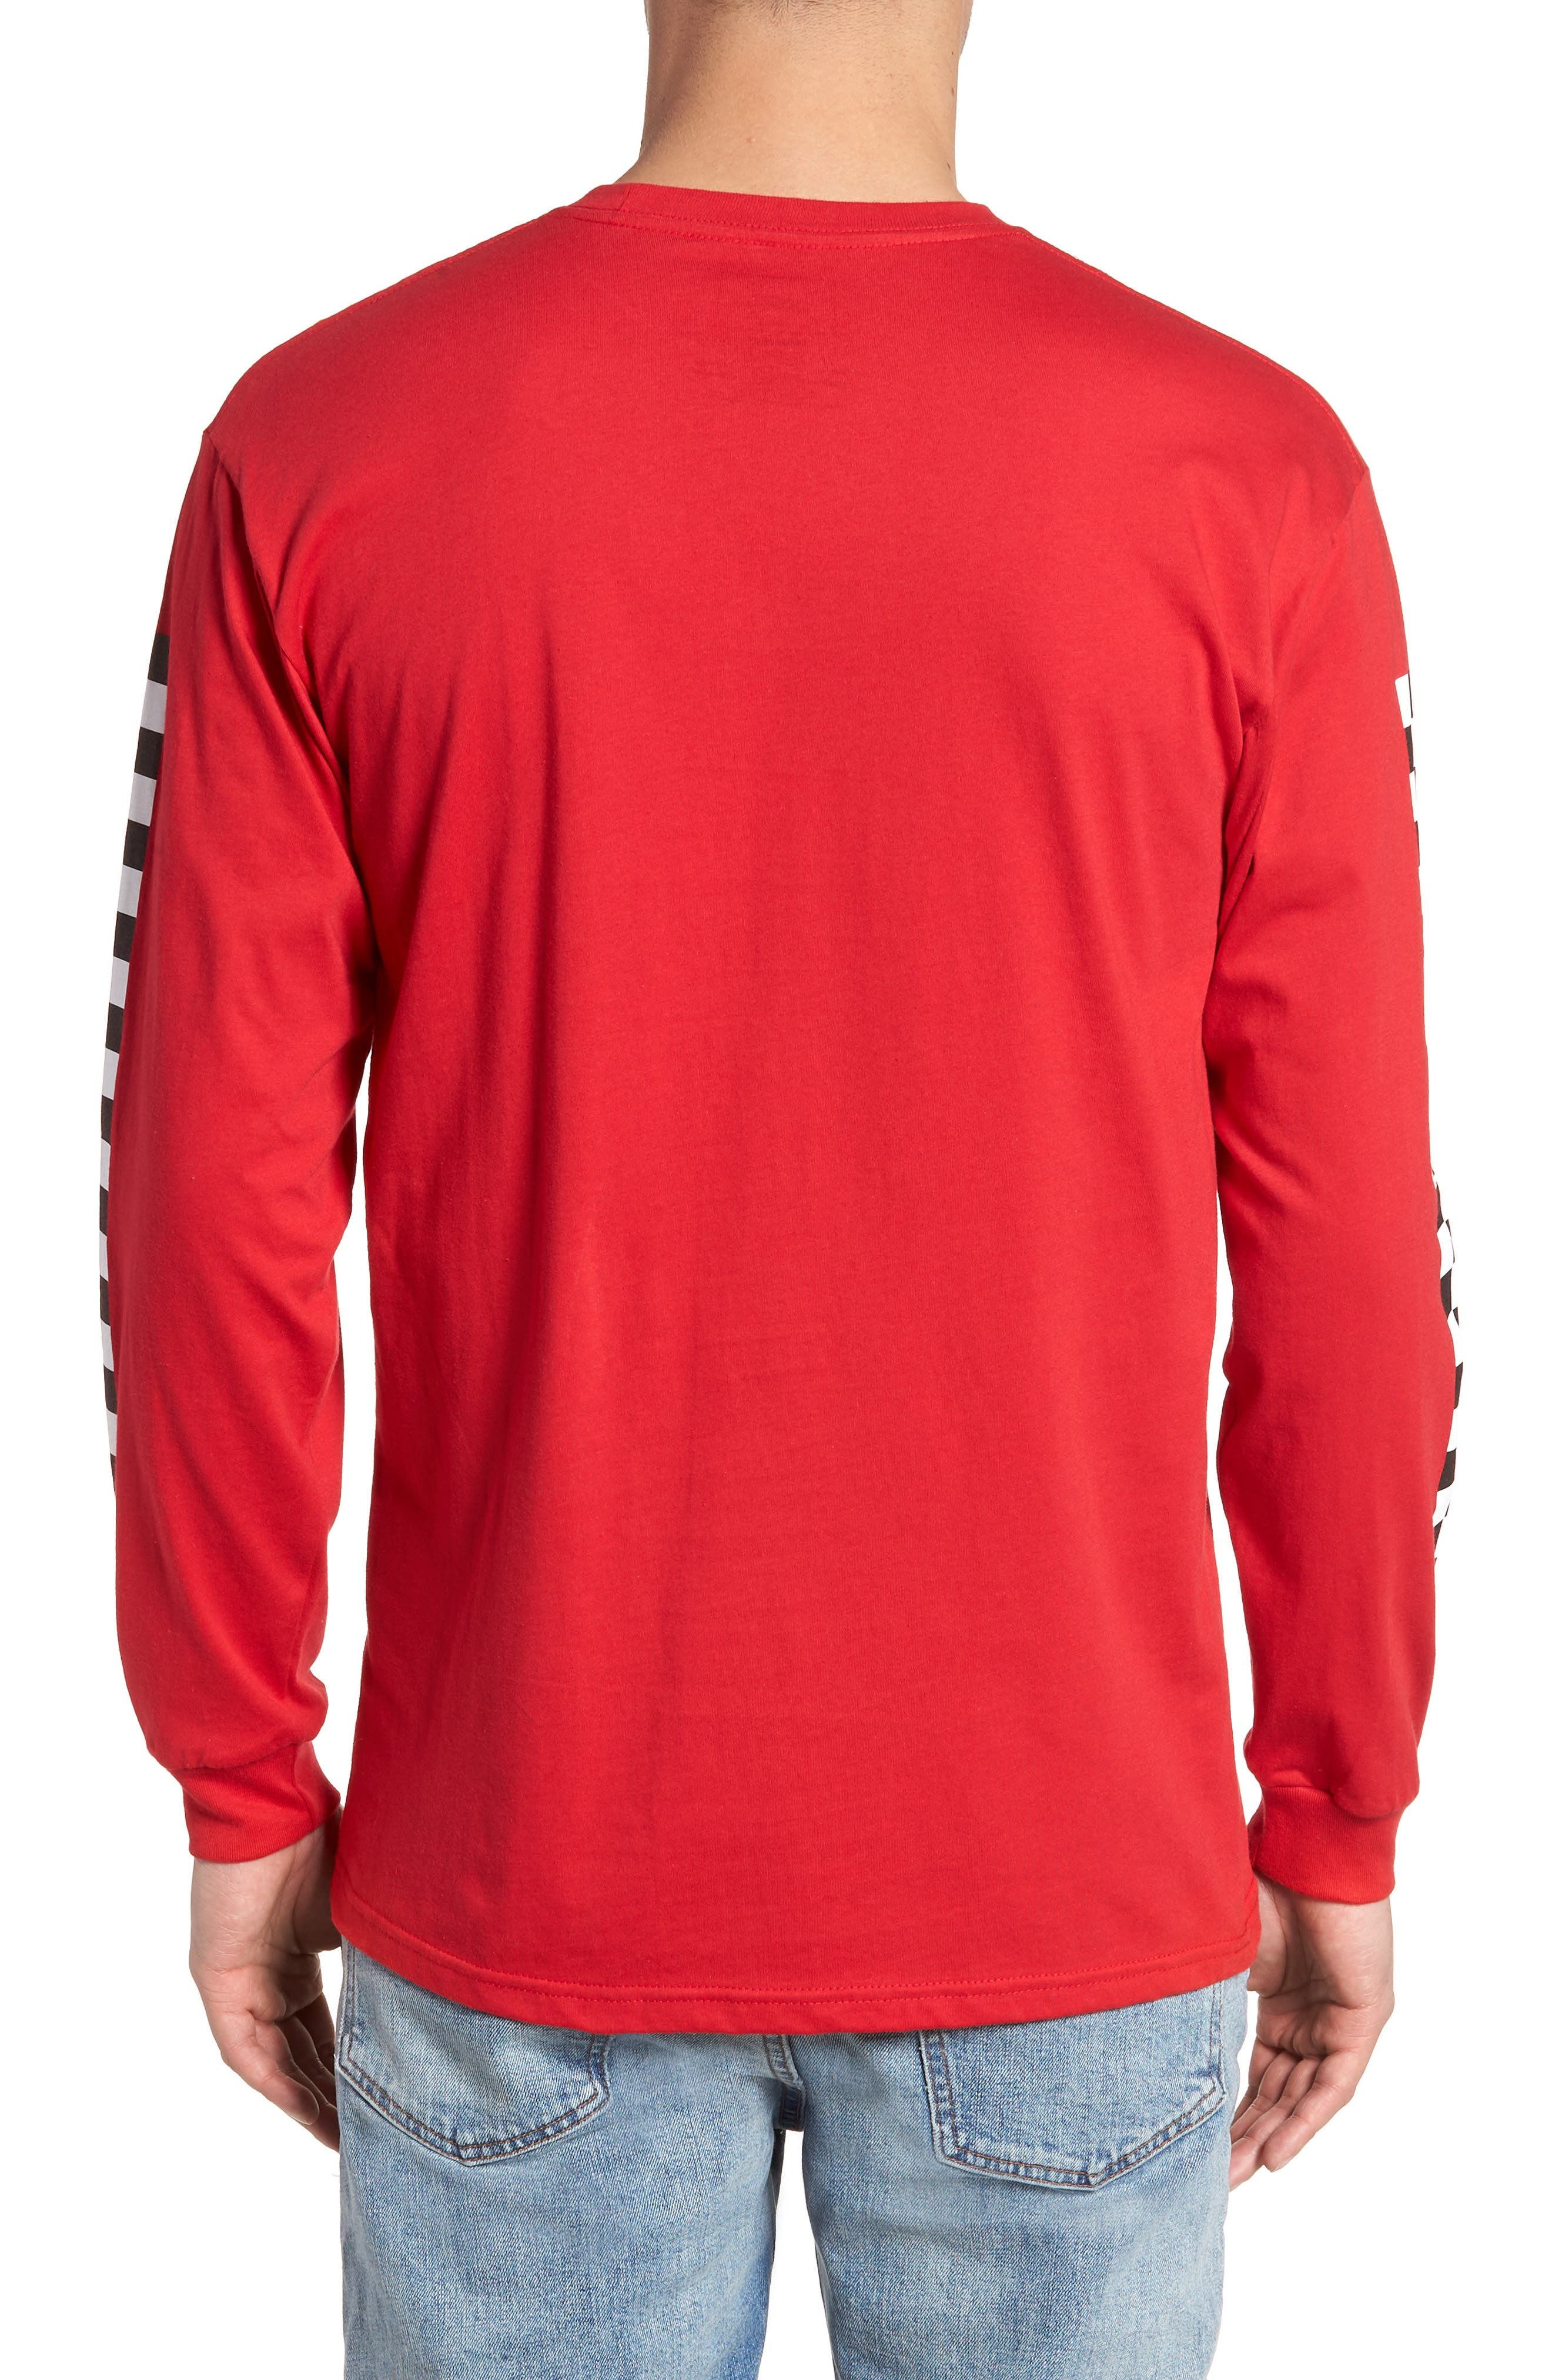 Classic Checkmate Long Sleeve T-Shirt,                             Alternate thumbnail 2, color,                             Red/ Black